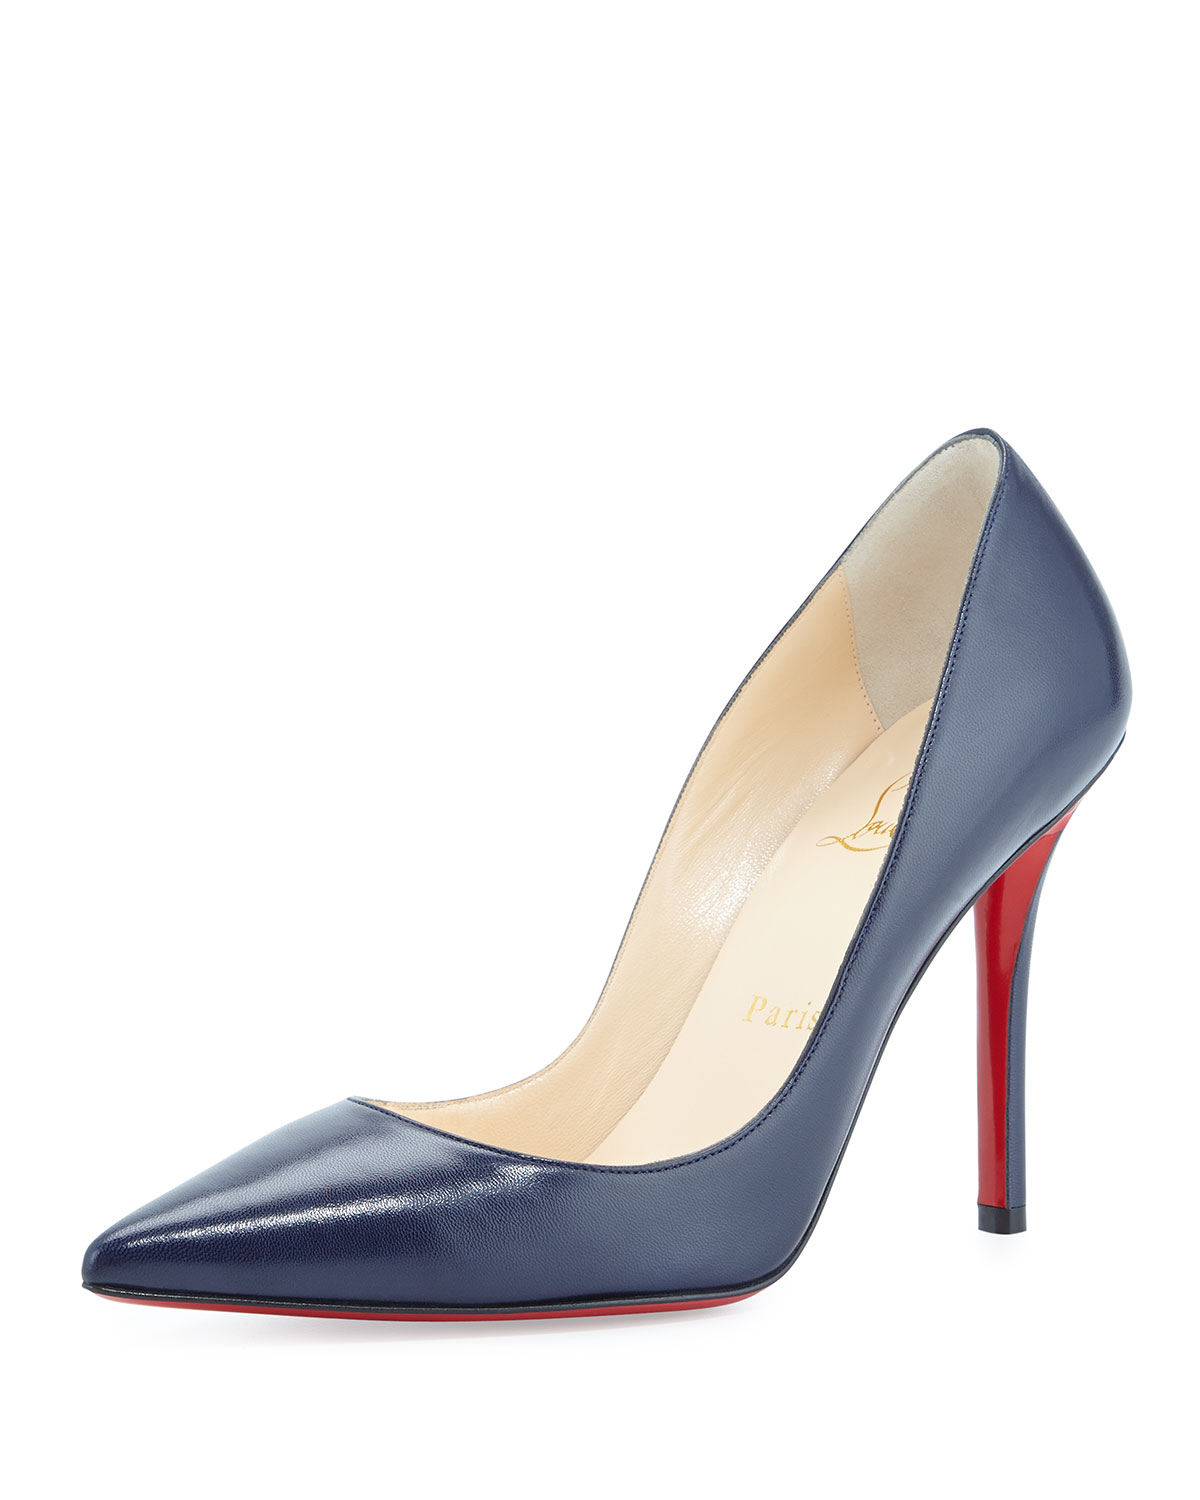 watch aa39c 28579 Apostrophy Pointed Red Sole Pump, Navy